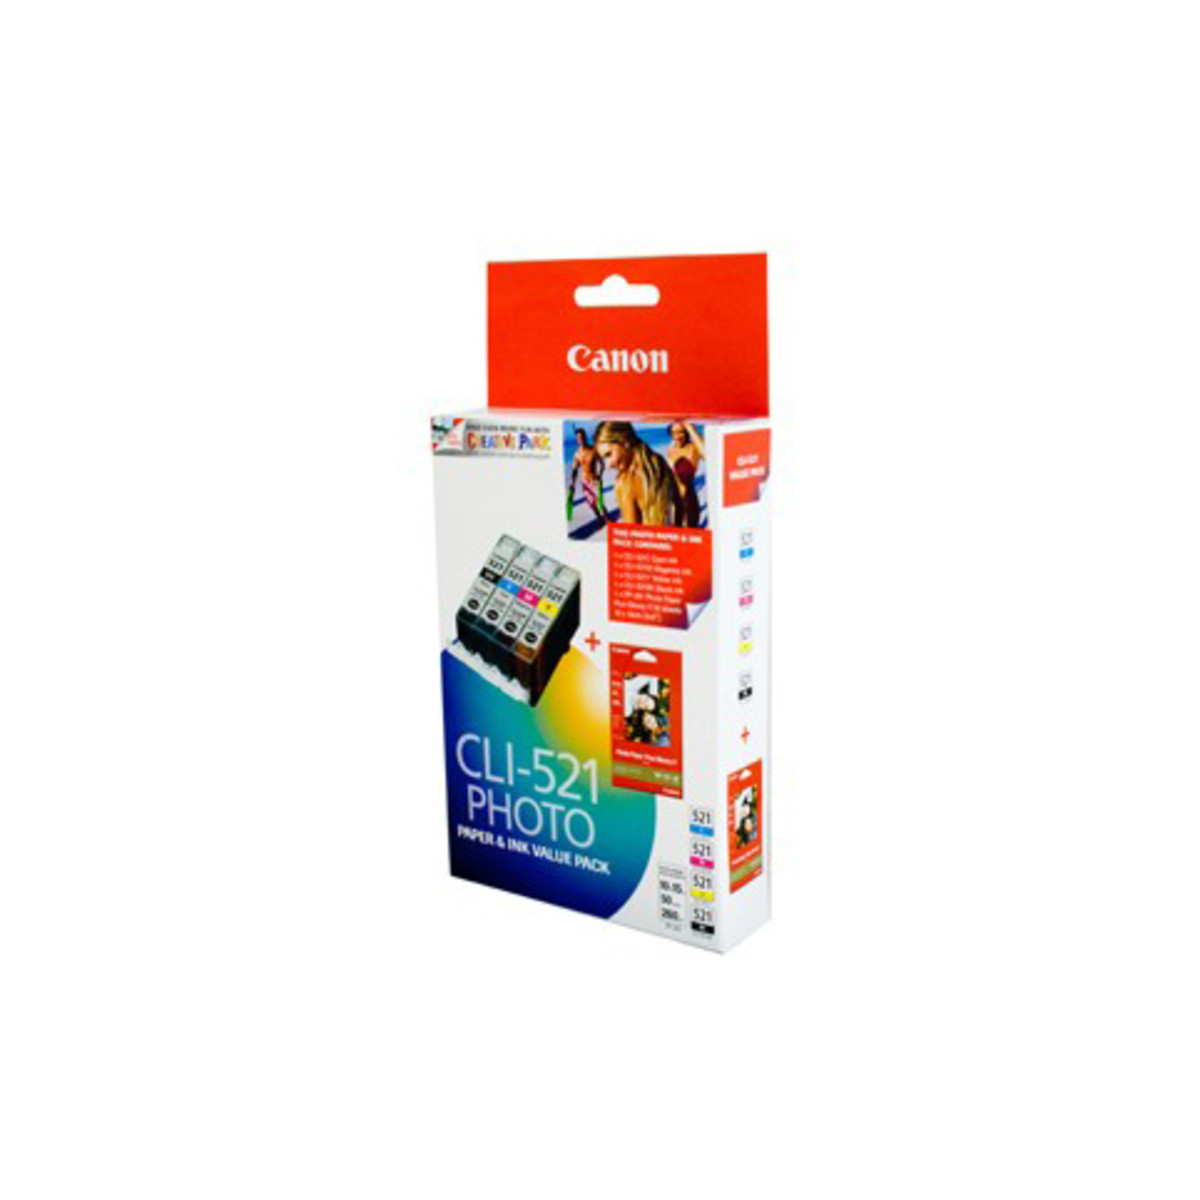 Canon CLI-521 Photo Ink Cartridges - Value Pack